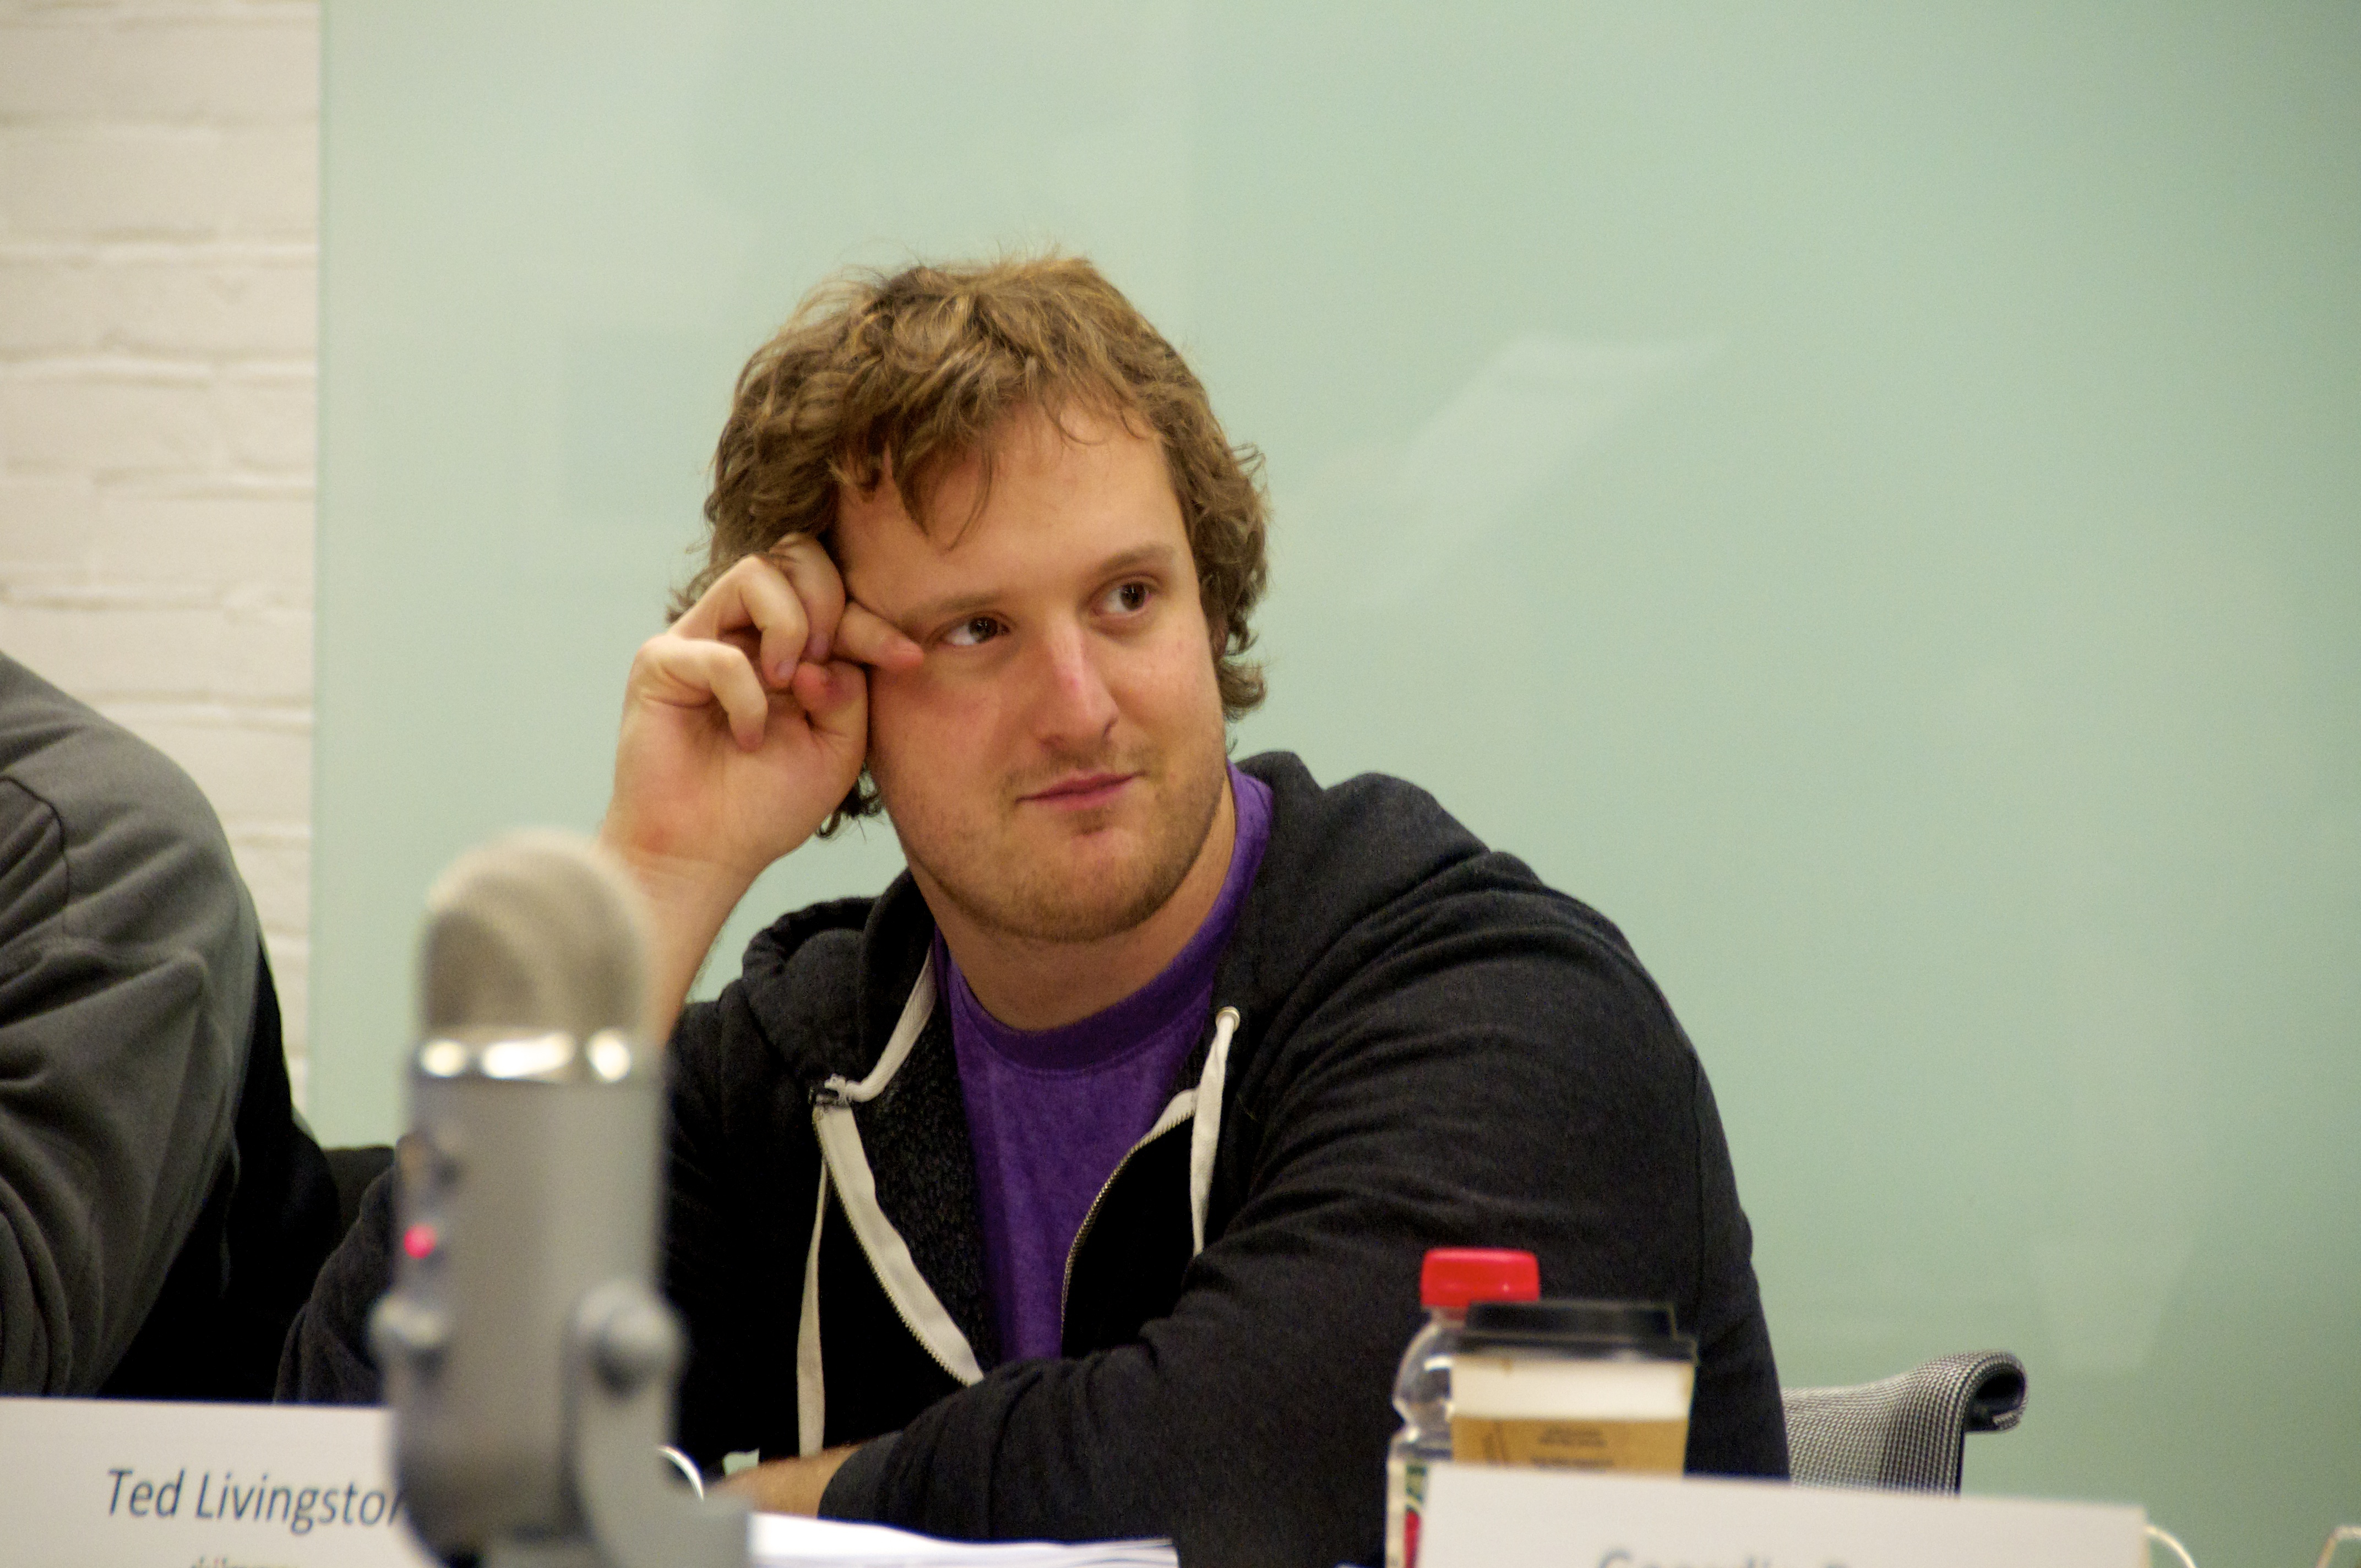 Kik founder and CEO Ted Livingston